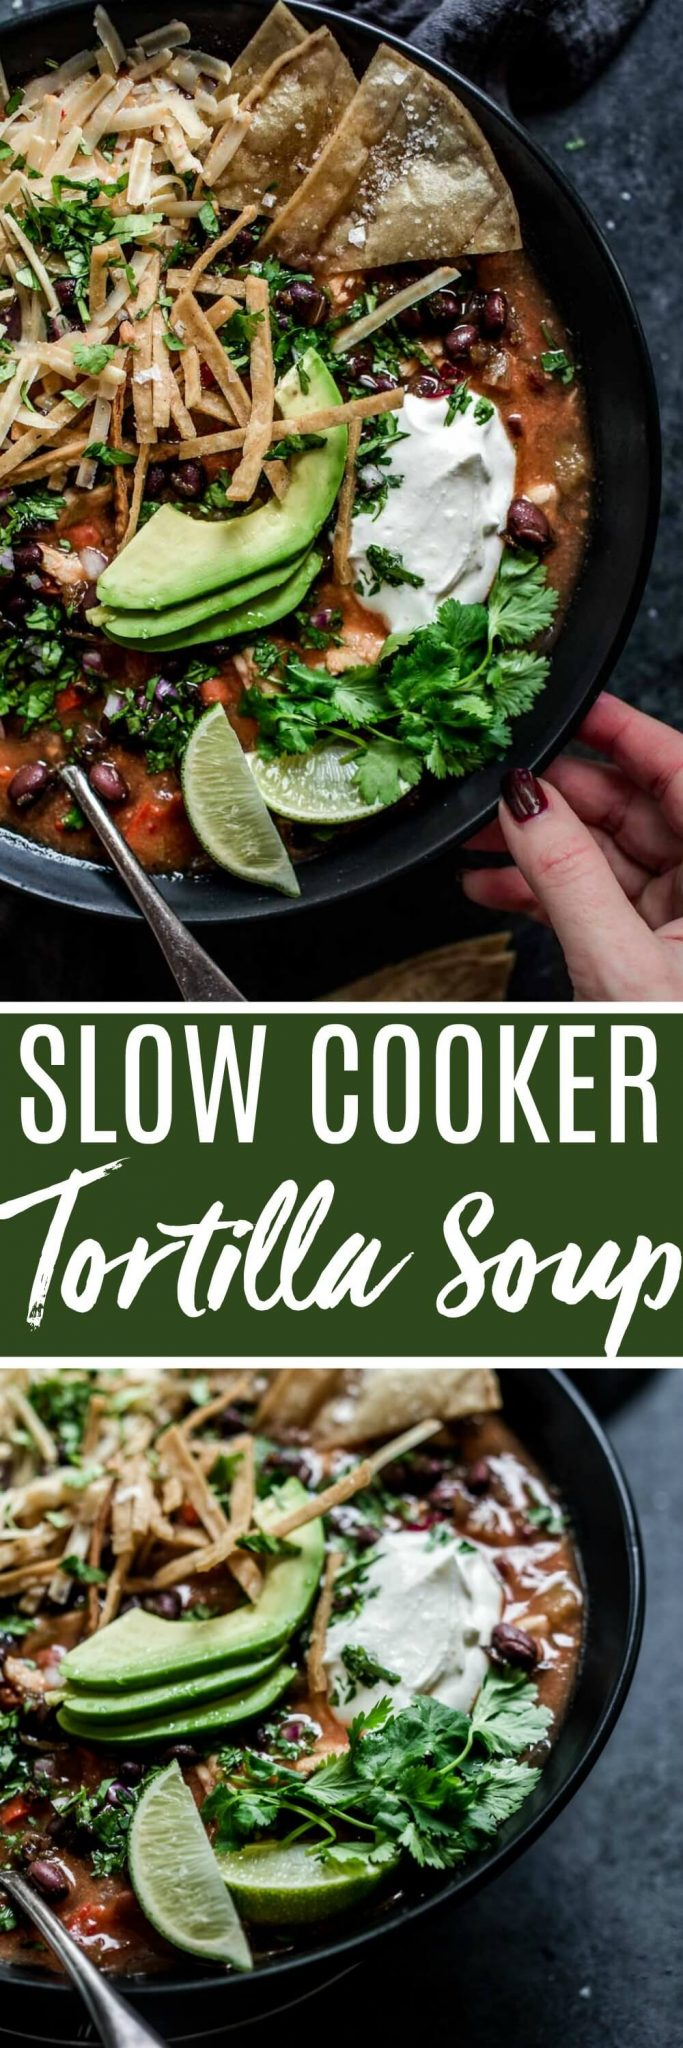 Slow Cooker Chicken Tortilla Soup can be made easy with your crockpot. Just add all the ingredients to your slow cooker and go! Serve it up with crispy tortilla chips, avocado, sour cream & cheddar cheese.